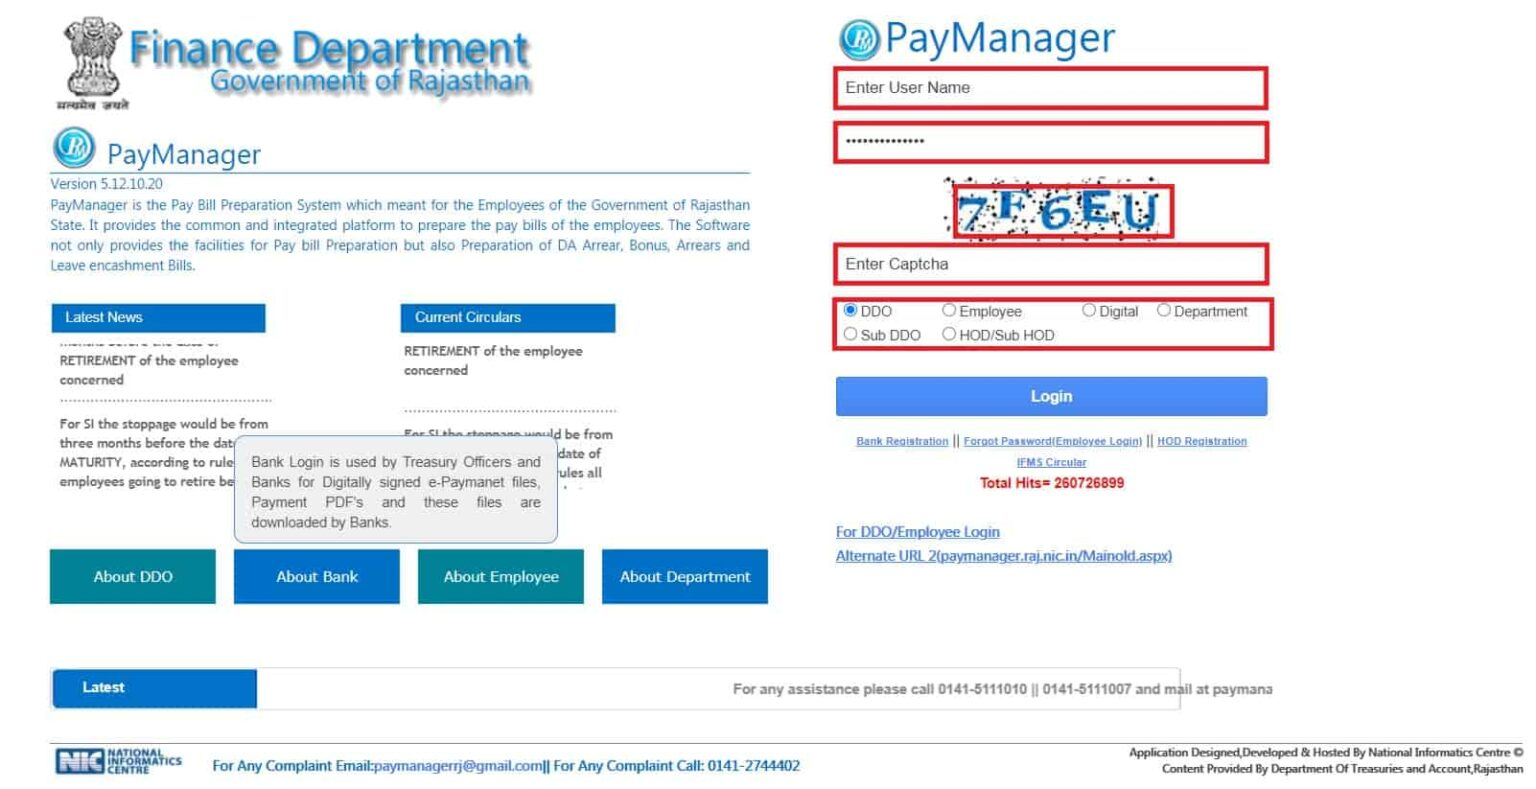 paymanager2.raj.nic.in or pripaymanager.raj.nic.in